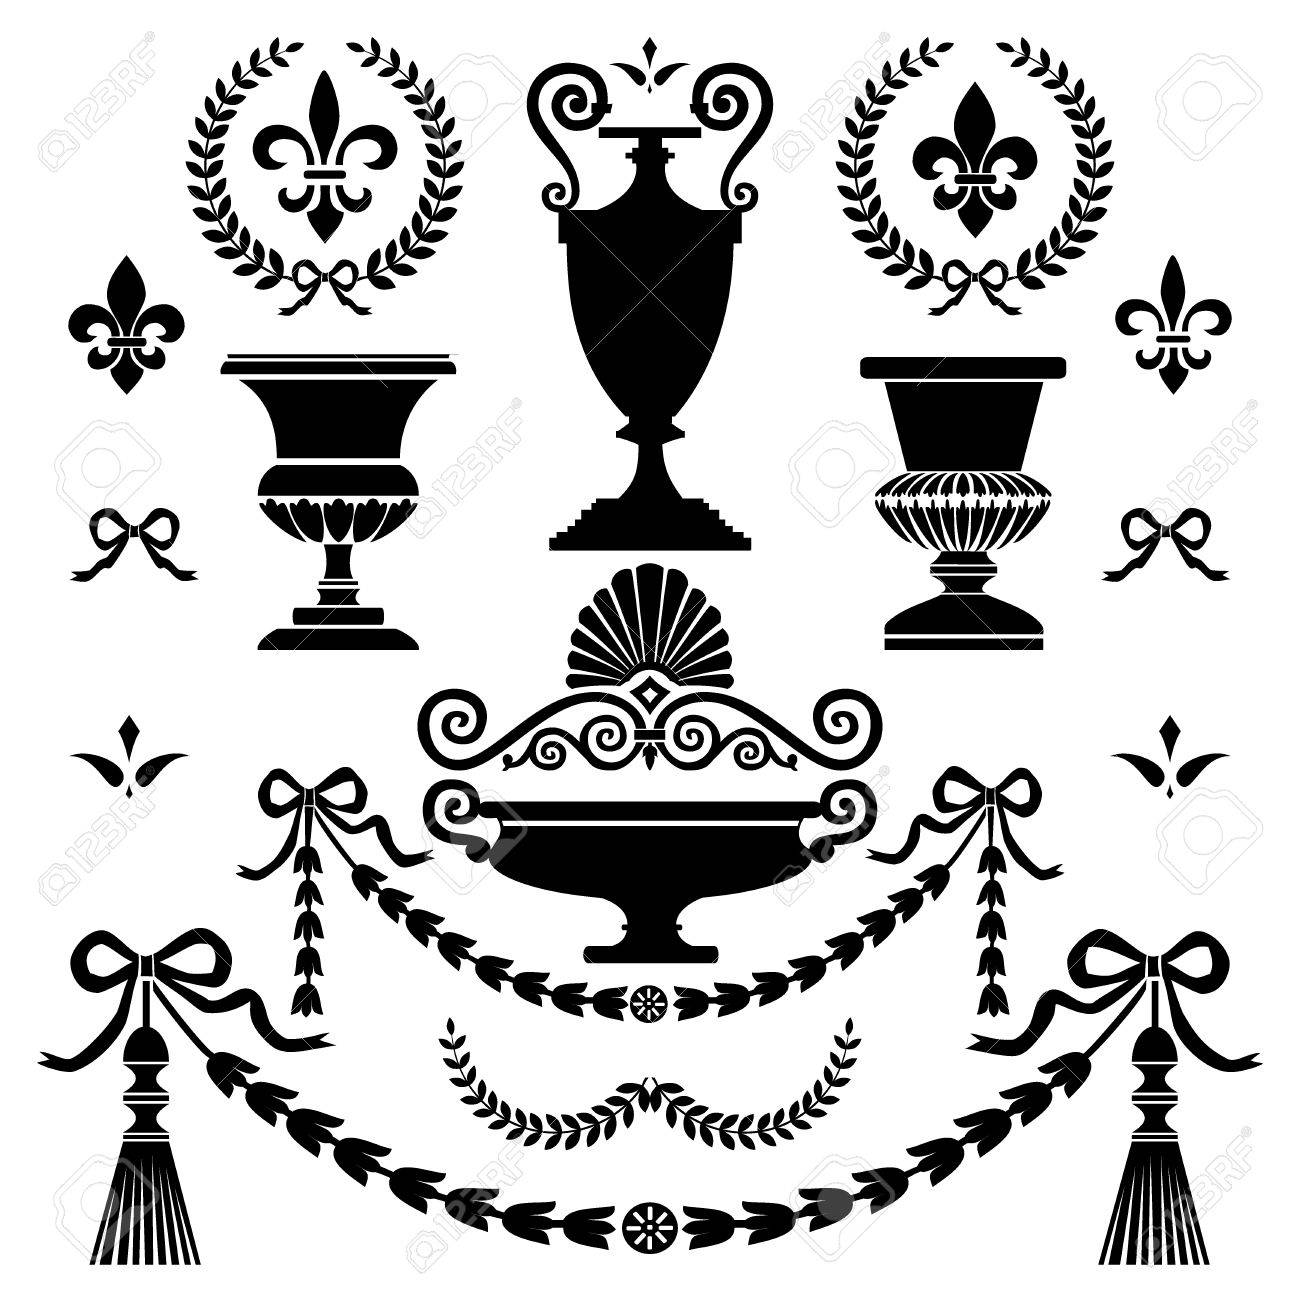 Victorian Design Elements classic style design elements royalty free cliparts, vectors, and